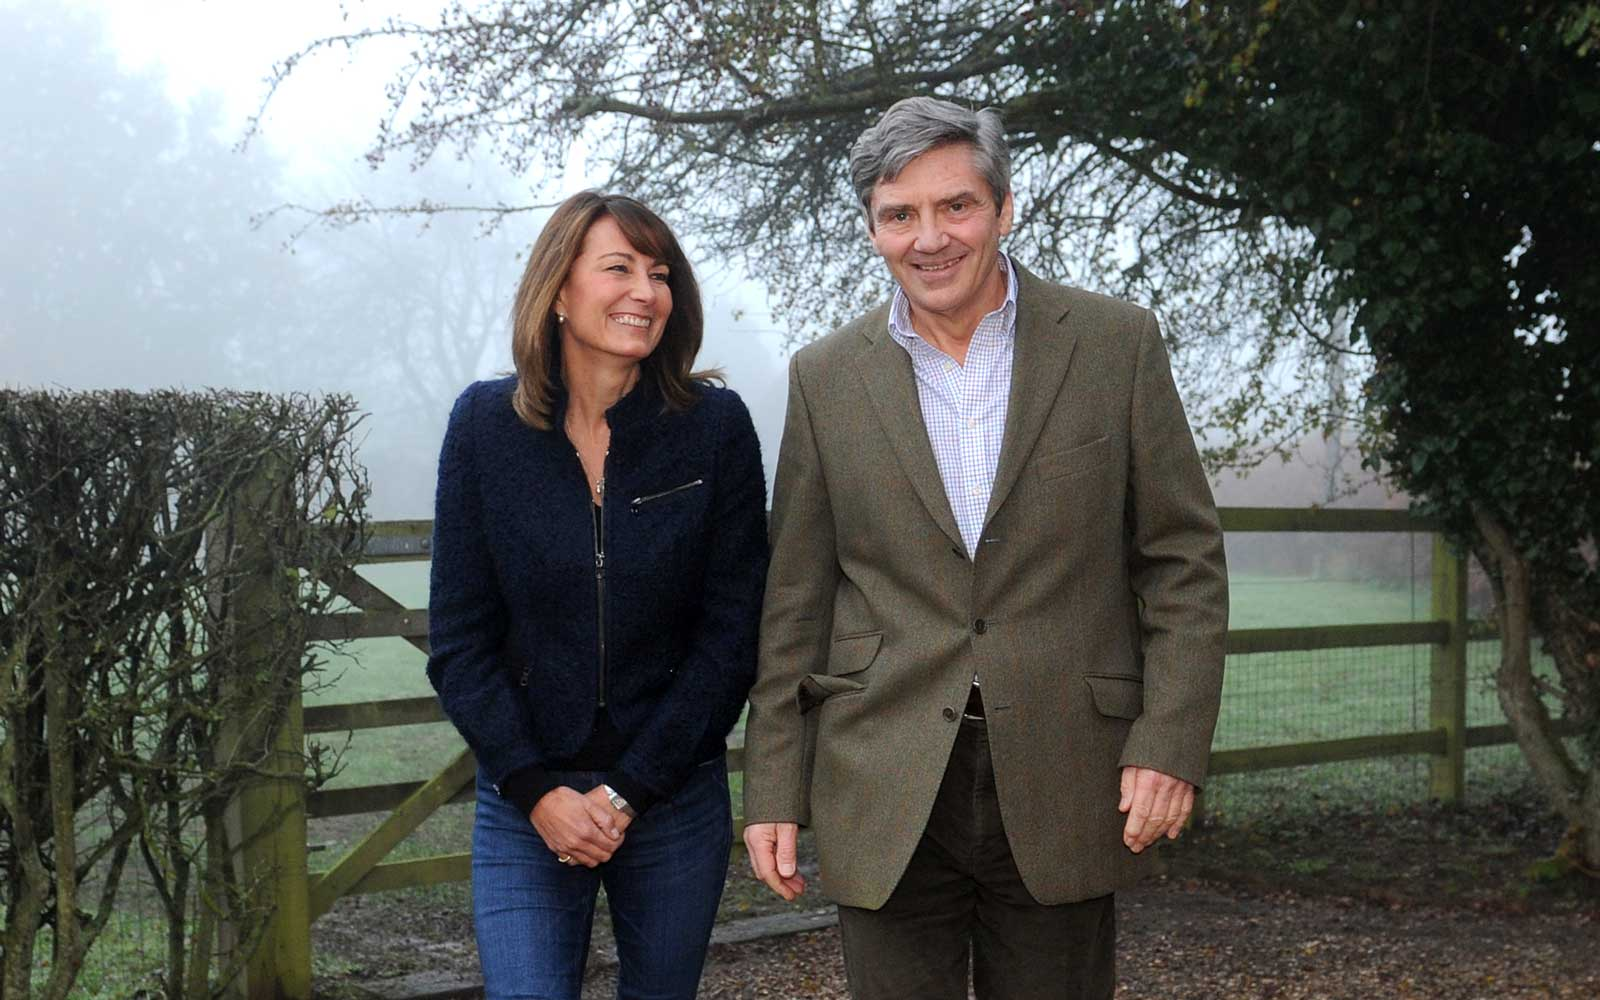 Michael and Carole Middleton, parents of Kate Middleton, Catherine Duchess of Cambridge